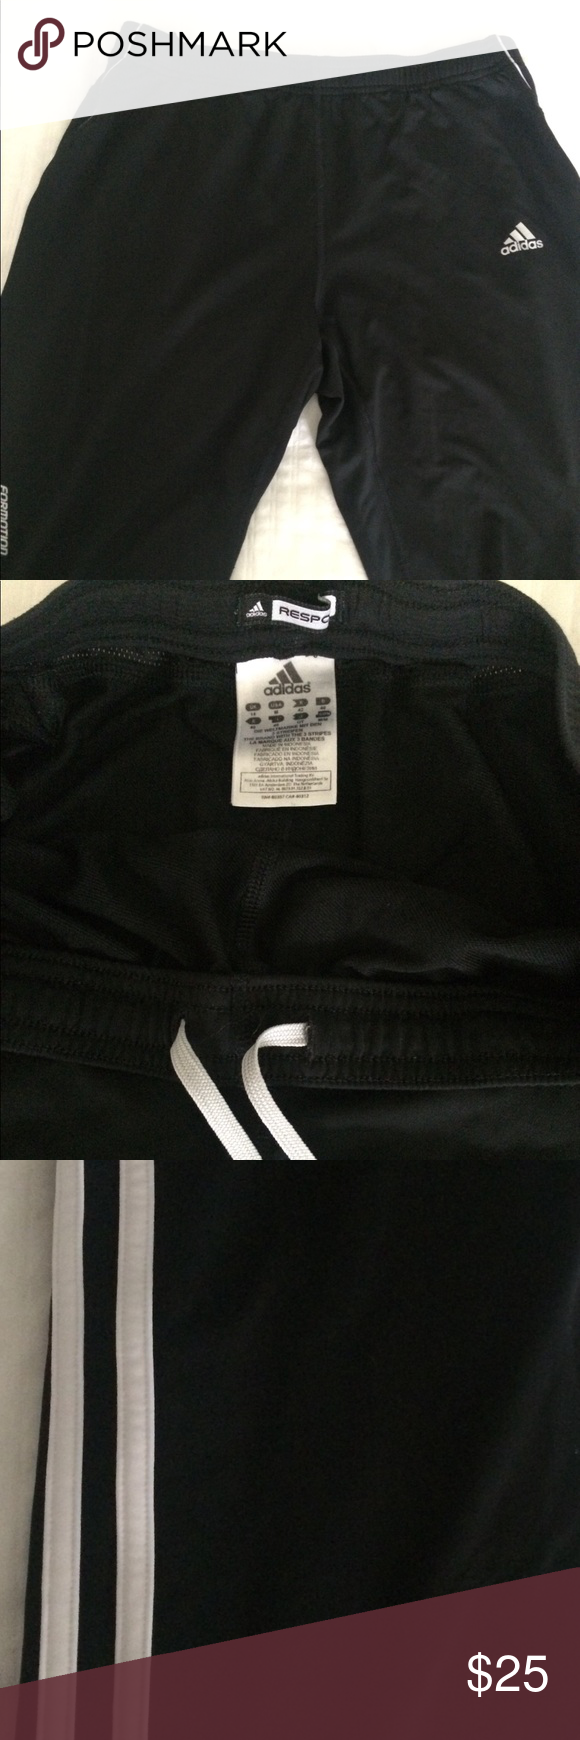 aaf59925709be3 Adidas Response Formotion black track pants Size medium in perfect  condition. Light weight, cool material with a back pocket, elastic waist  with drawstrings ...